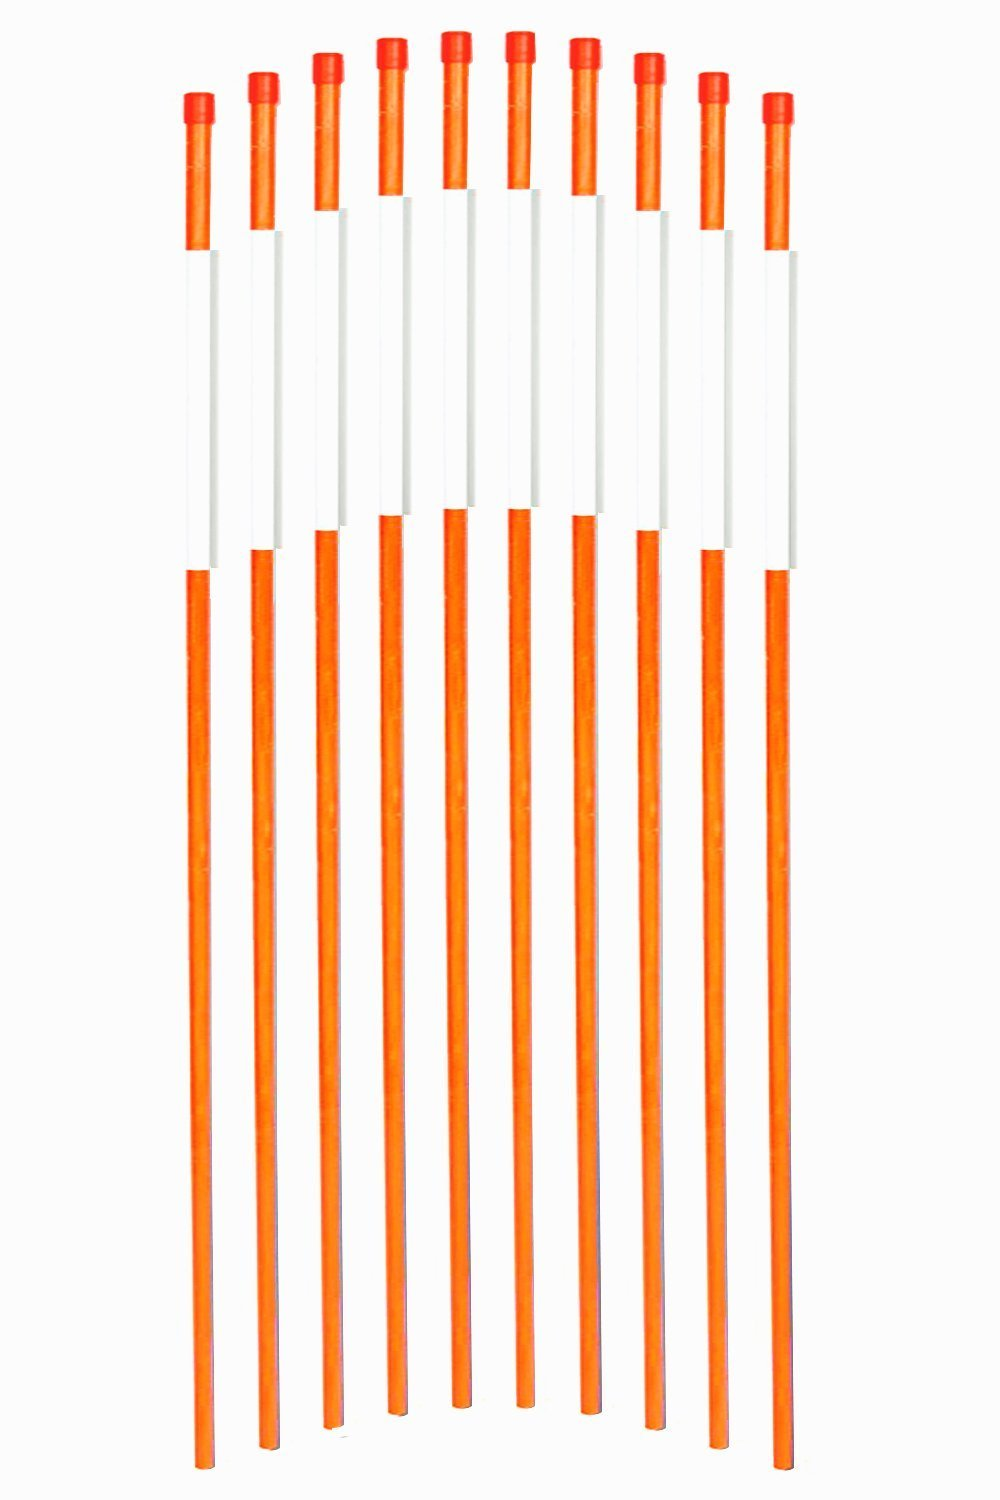 FiberMarker Hollow Reflective Driveway Markers 72-Inch 50-Pack Orange 5/16-Inch Dia Driveway Poles Easy Visibility at Night